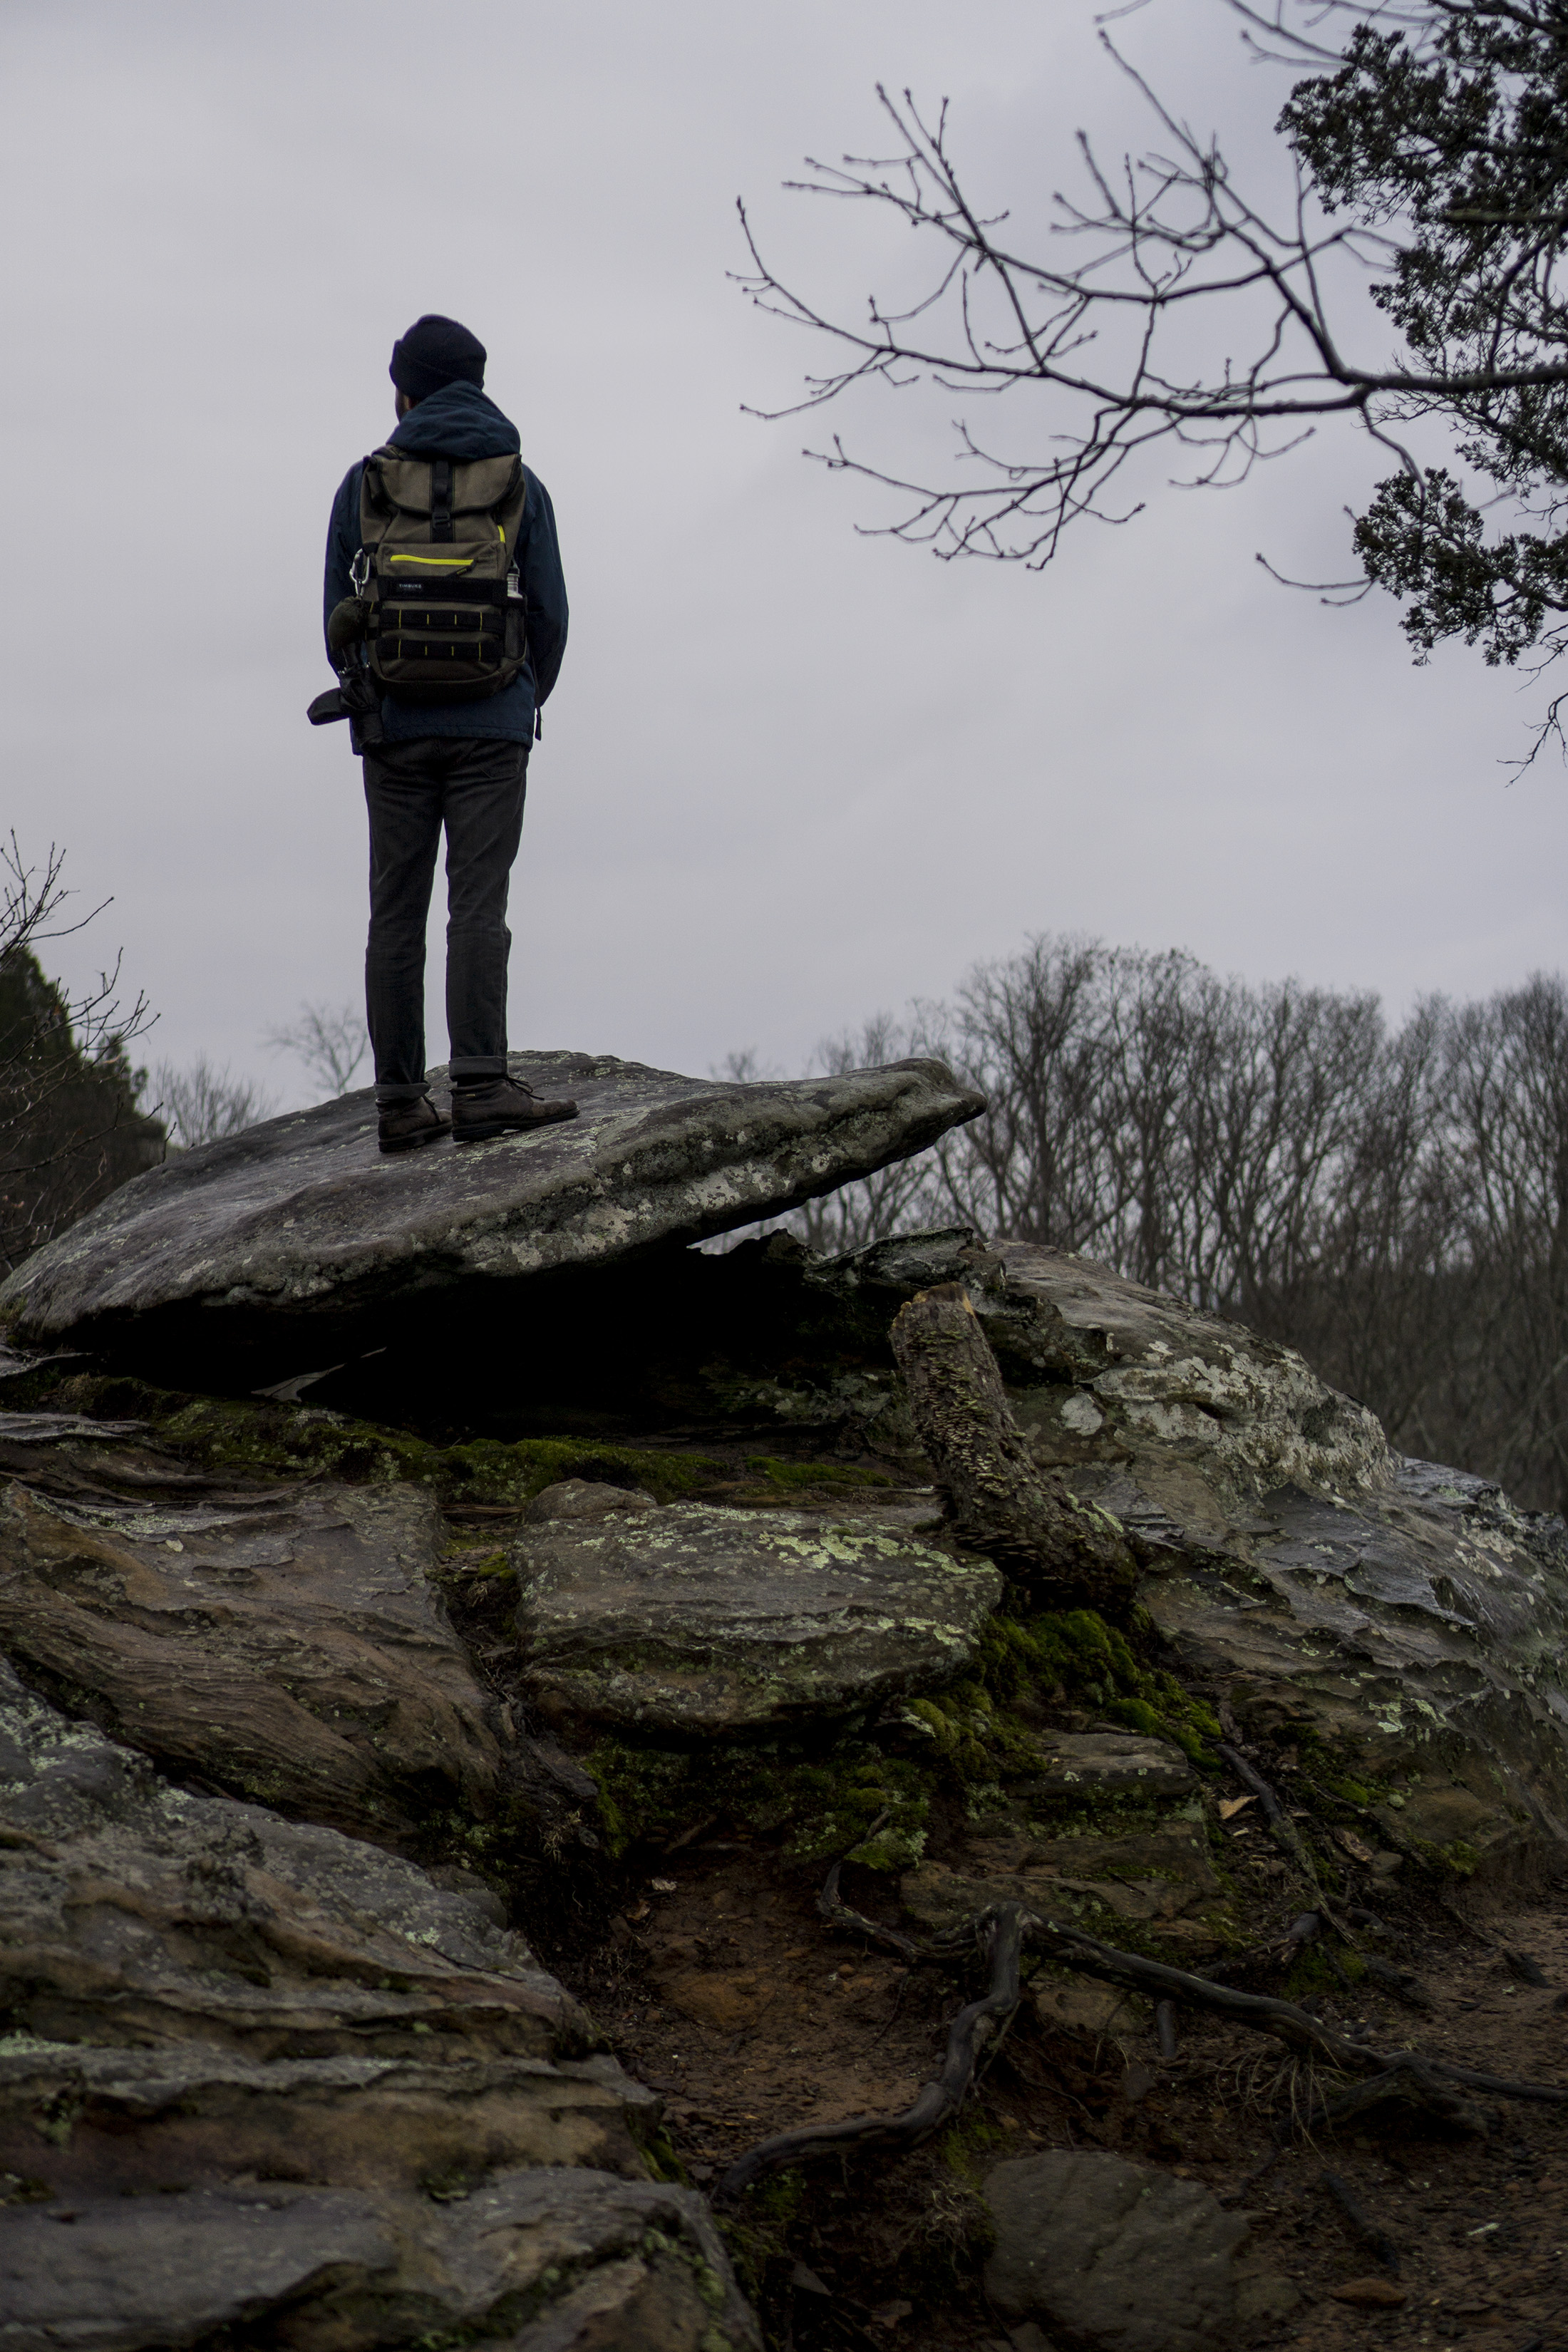 Standing on wet rock slabs, Garden of the Gods, Shawnee National Forest, IL / Darker than Green